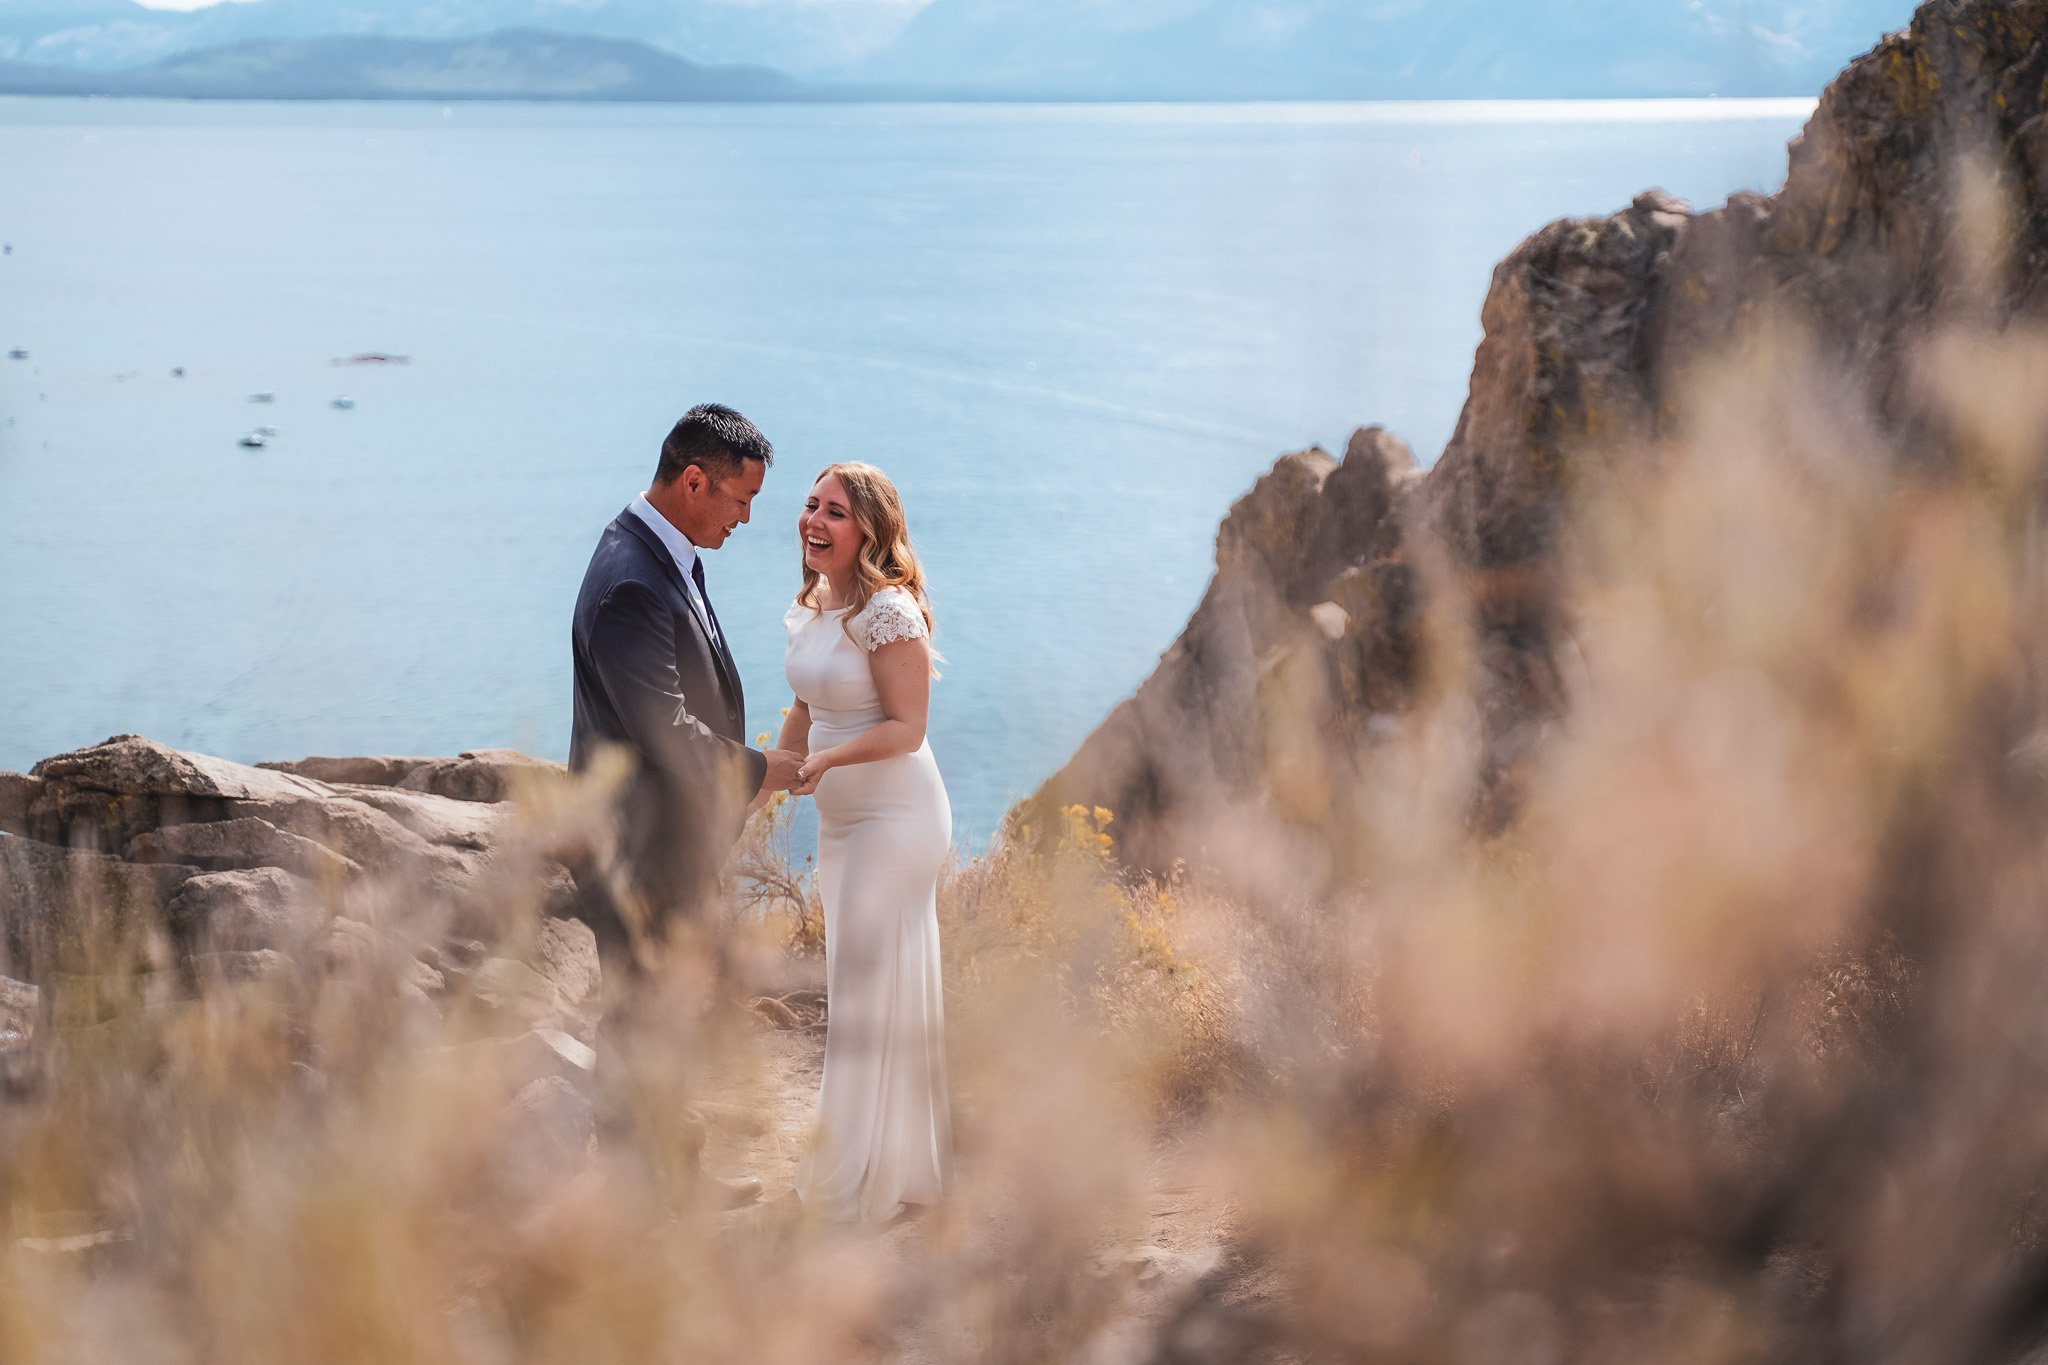 Bride and groom laughing with Lake Tahoe as a backdrop with mountains and lake